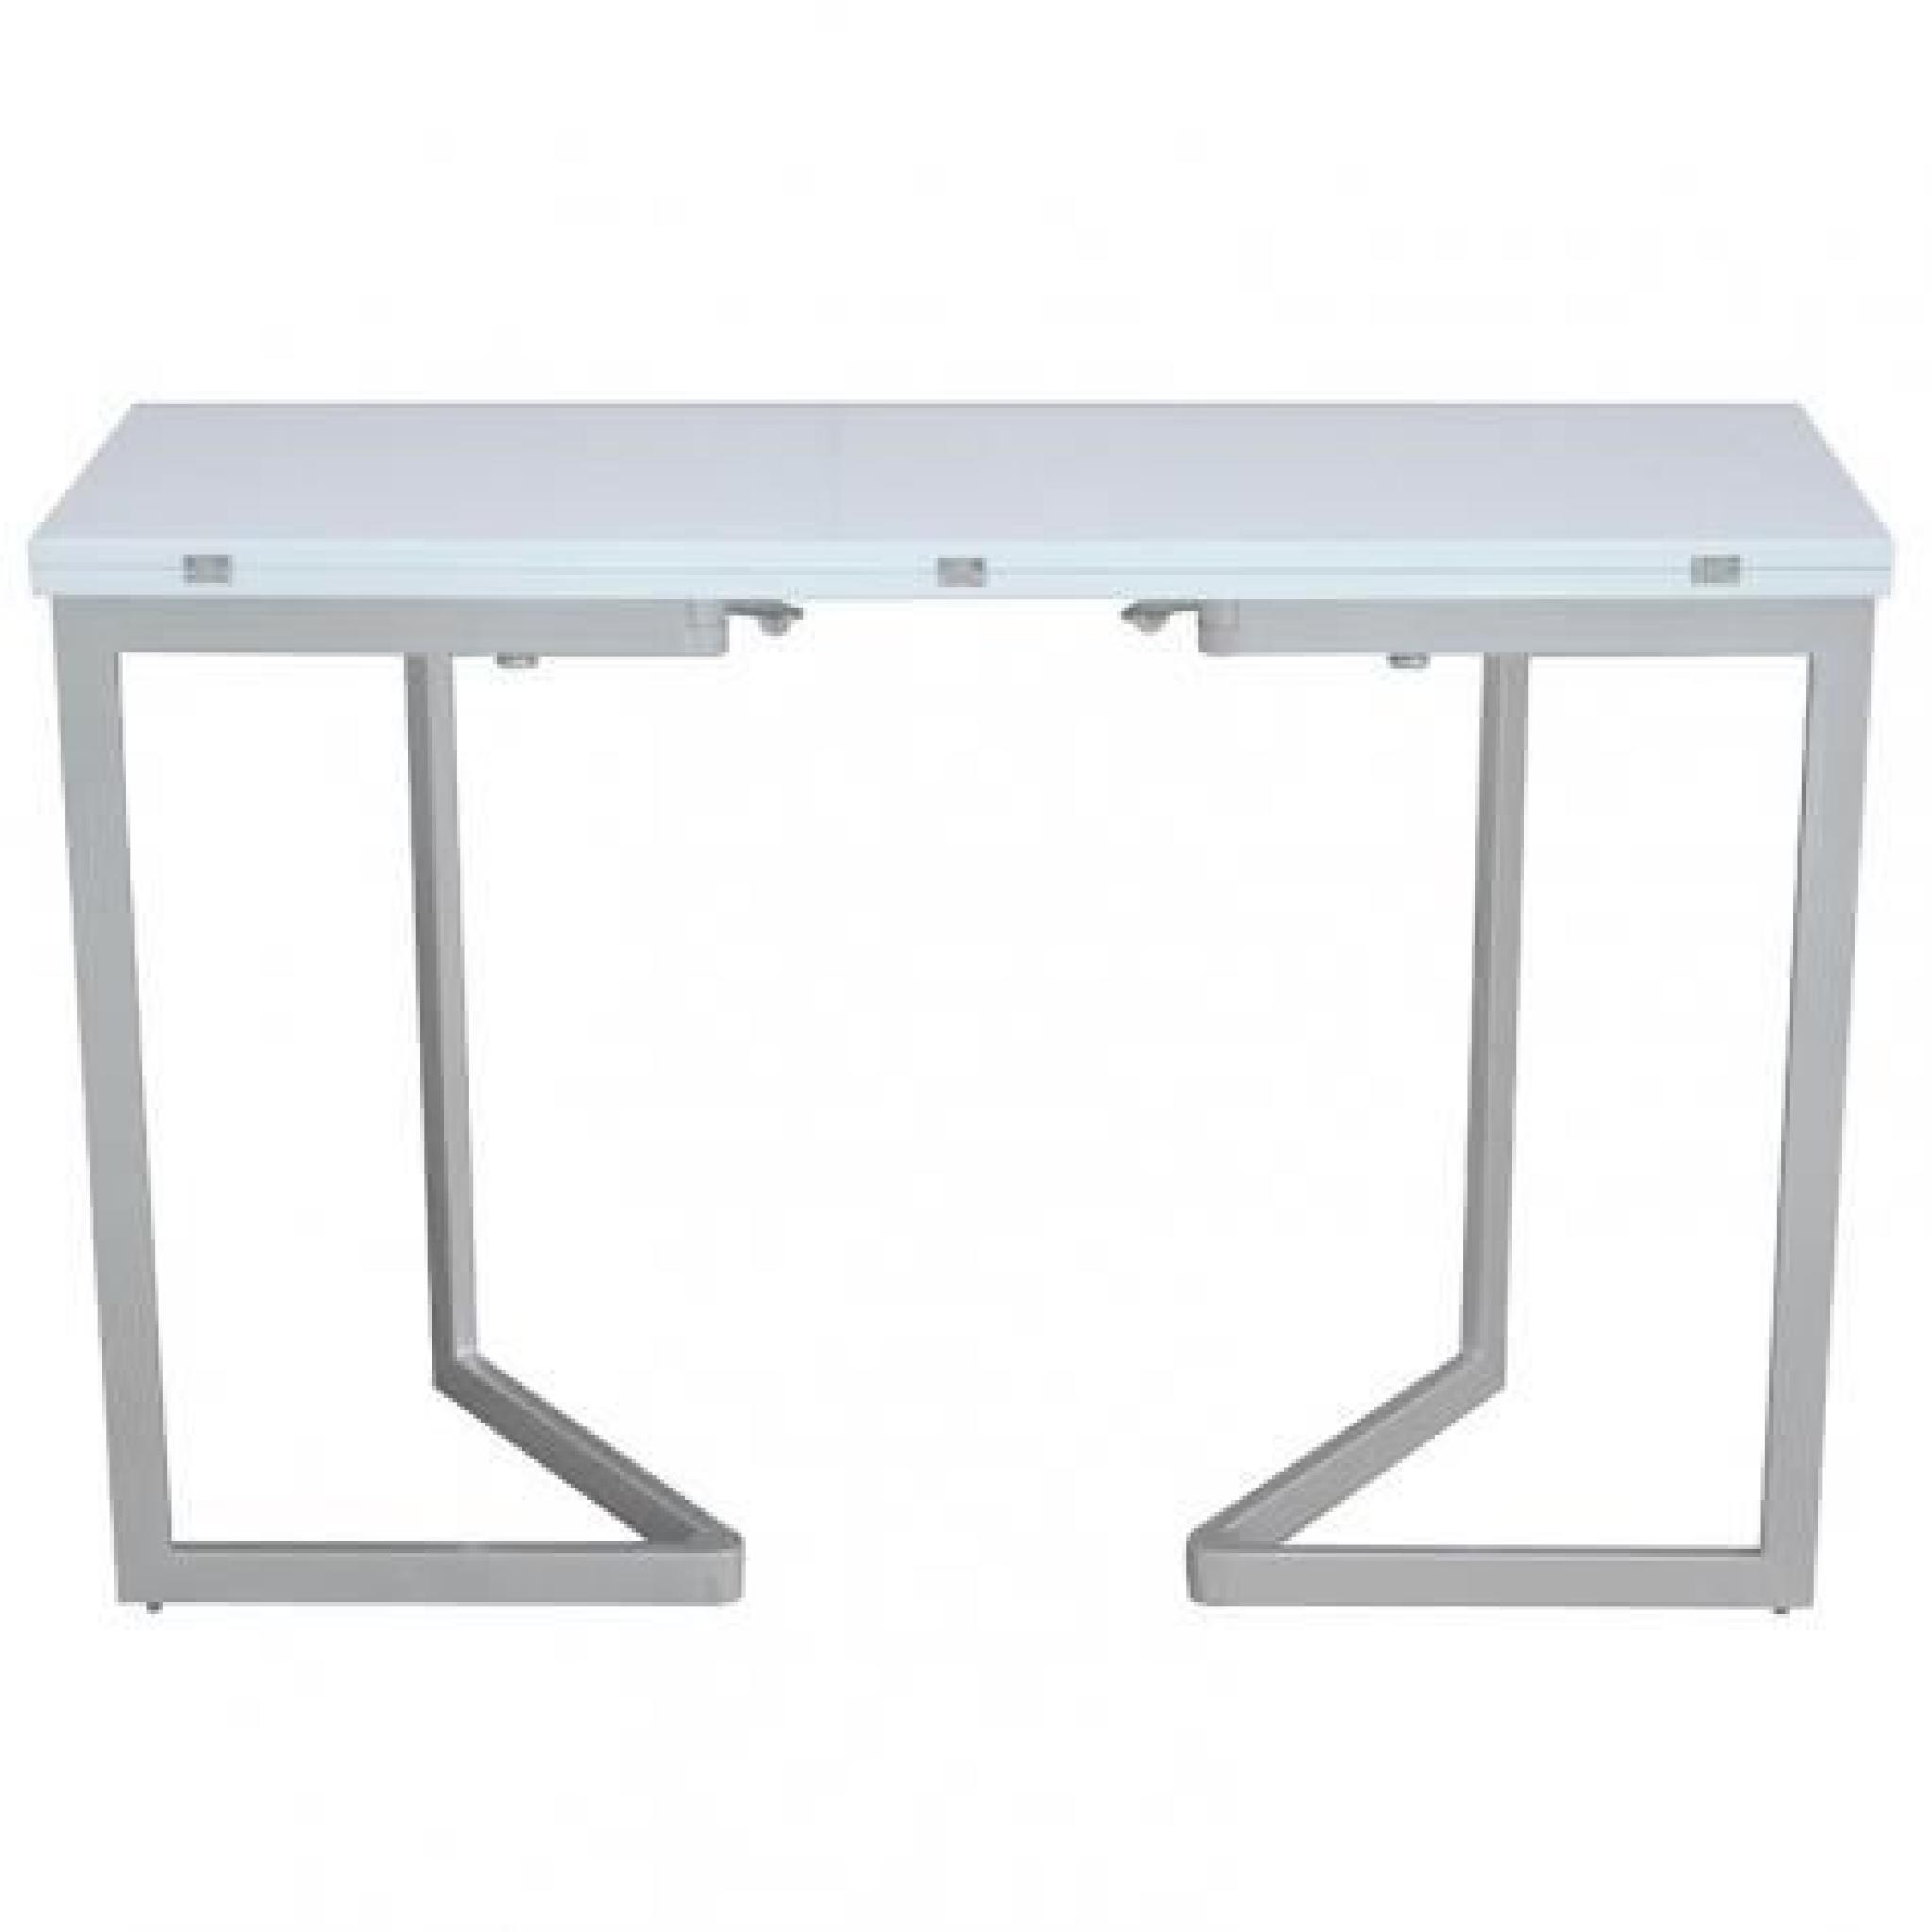 Table relevable extensible pas cher photos de conception for Table extensible 3 suisses